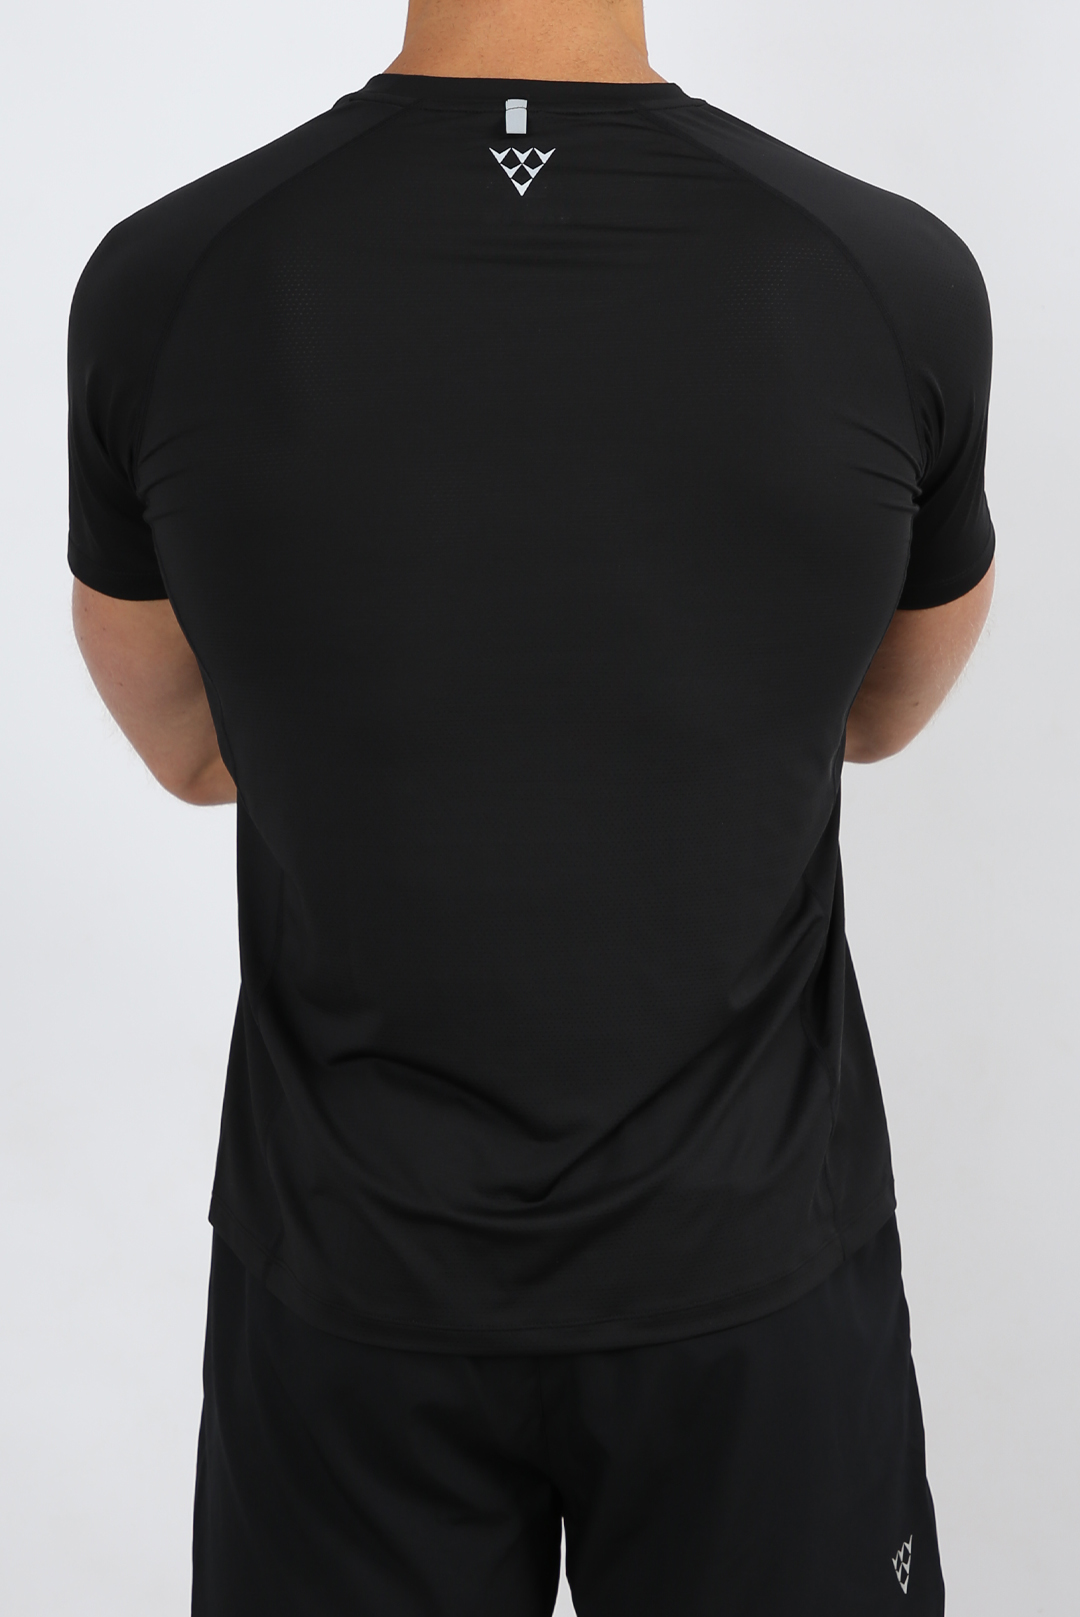 Men's Classic Training Tee